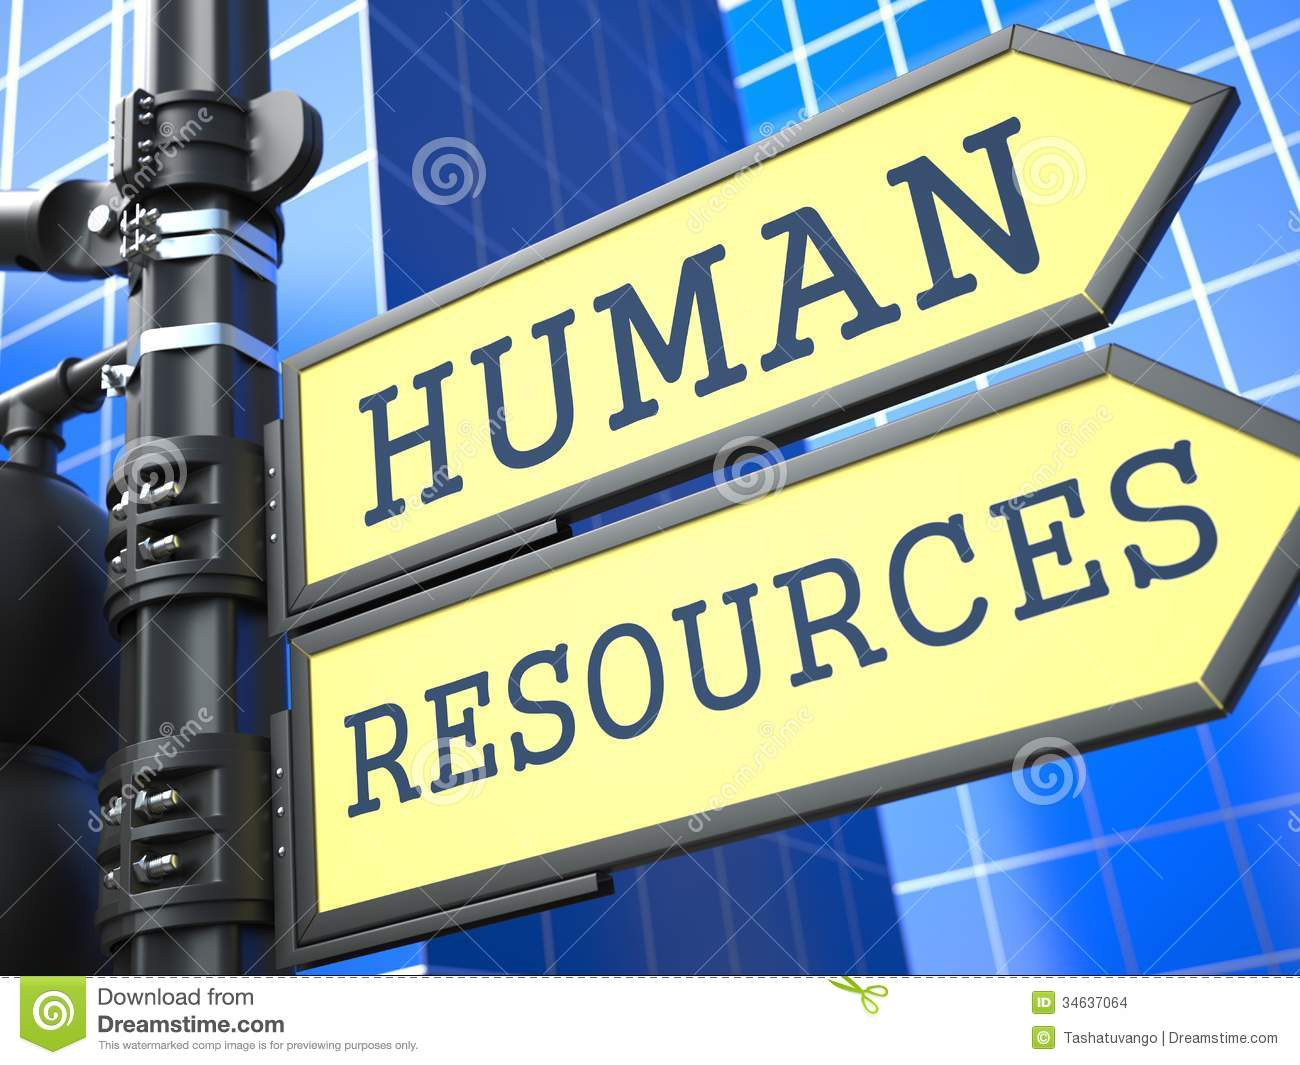 humar resource essay University of washington offers a certificate program in human resources management, with flexible evening and weekend classes to fit your schedule.